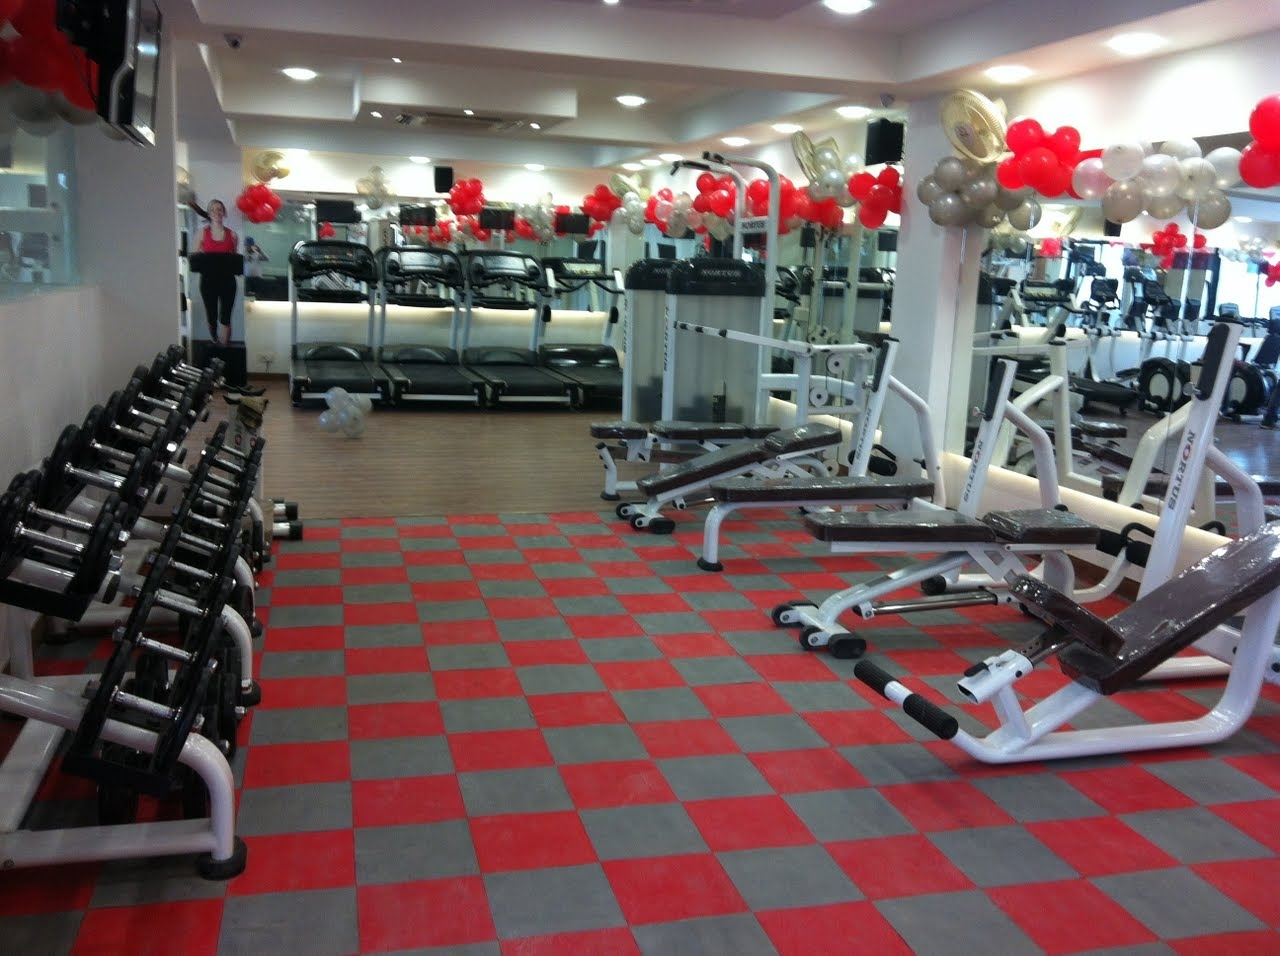 Flooring Ideas Red And Grey Rubber Flooring For Gym Smart Homes